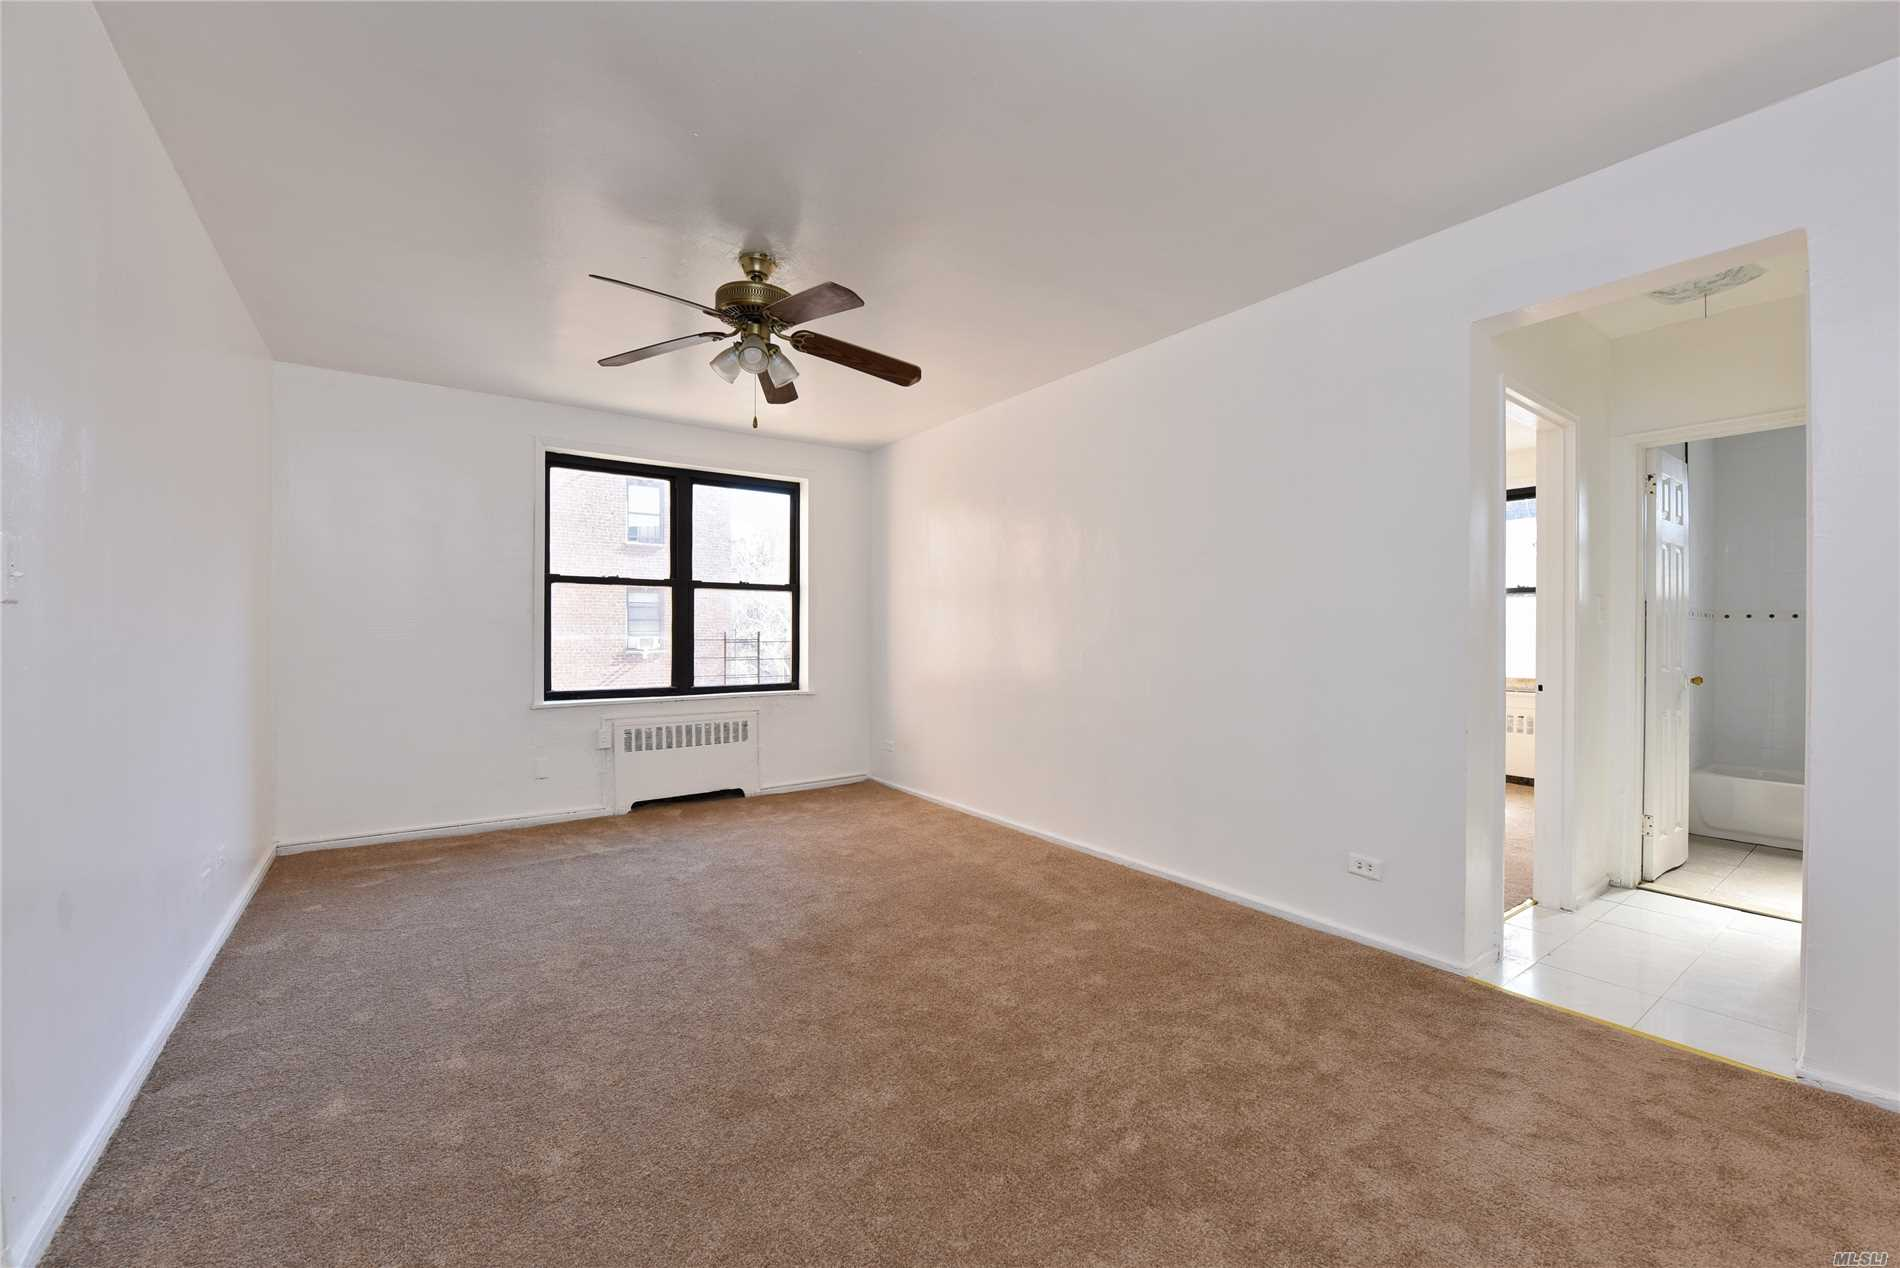 Bright 1Br Coop Unit, Rentable After 2 Years, No Flip Tax, Updated Kitchen And Bathroom, Lot Closets, New Carpets, Laundry Room And Recreation Room Are Available. Sale May Be Subject To Term And Conditions Of An Offering Plan, 2 Blocks To E, M, R Train, 1 Block To Bus Stop, Walk To Broadway, Close To Park, Post Office, School, Supermarket, Etc. All Information Deemed Accurate However Should Be Independently Verified.